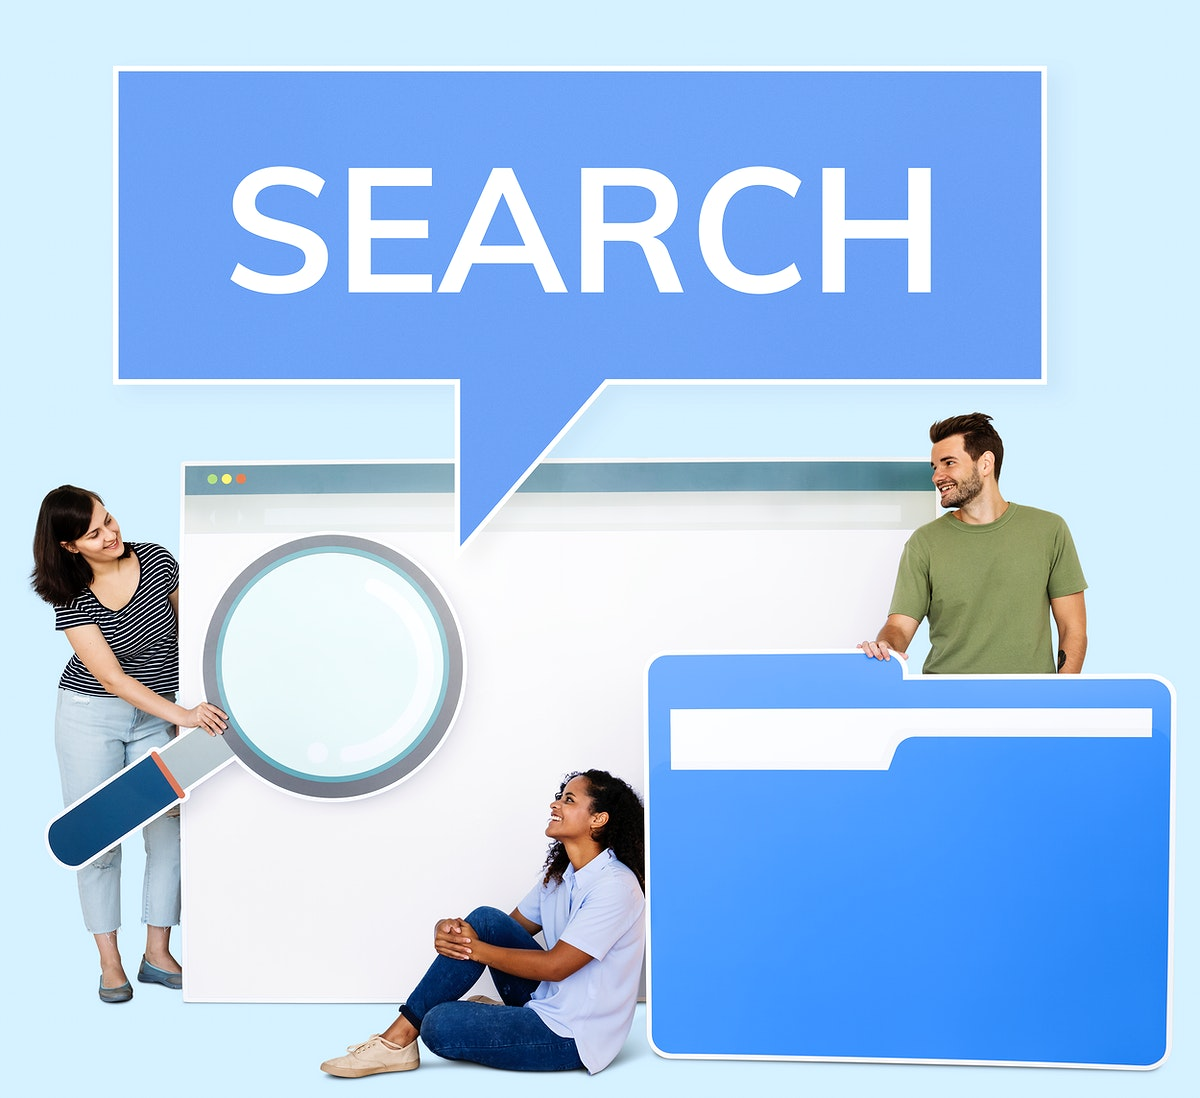 People holding search engine and file browsing icons